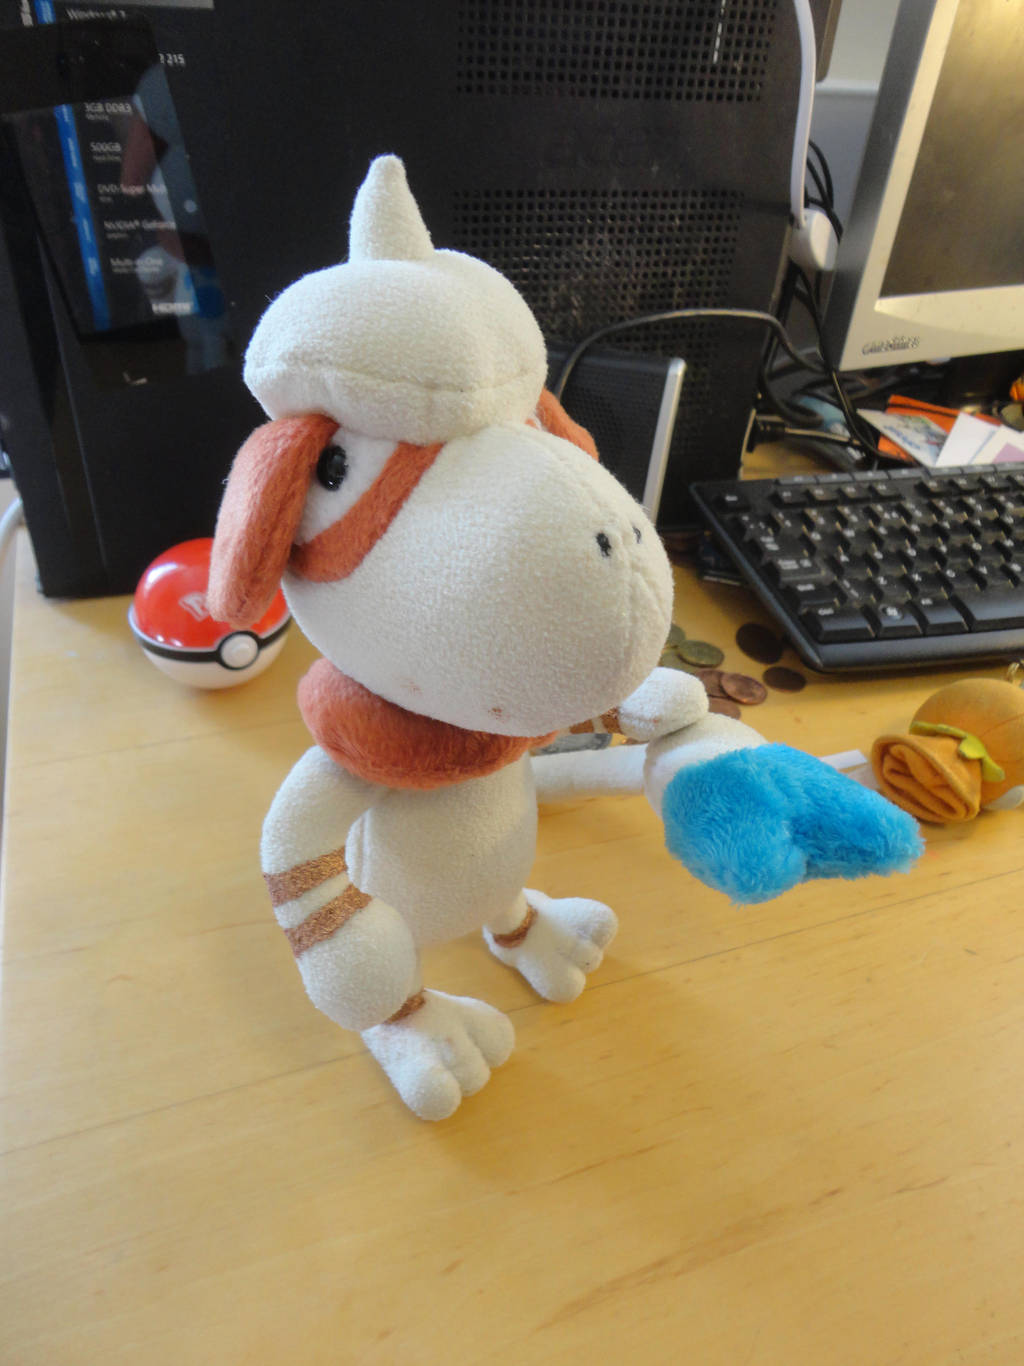 Blue-tailed Smeargle plush by Rinabow